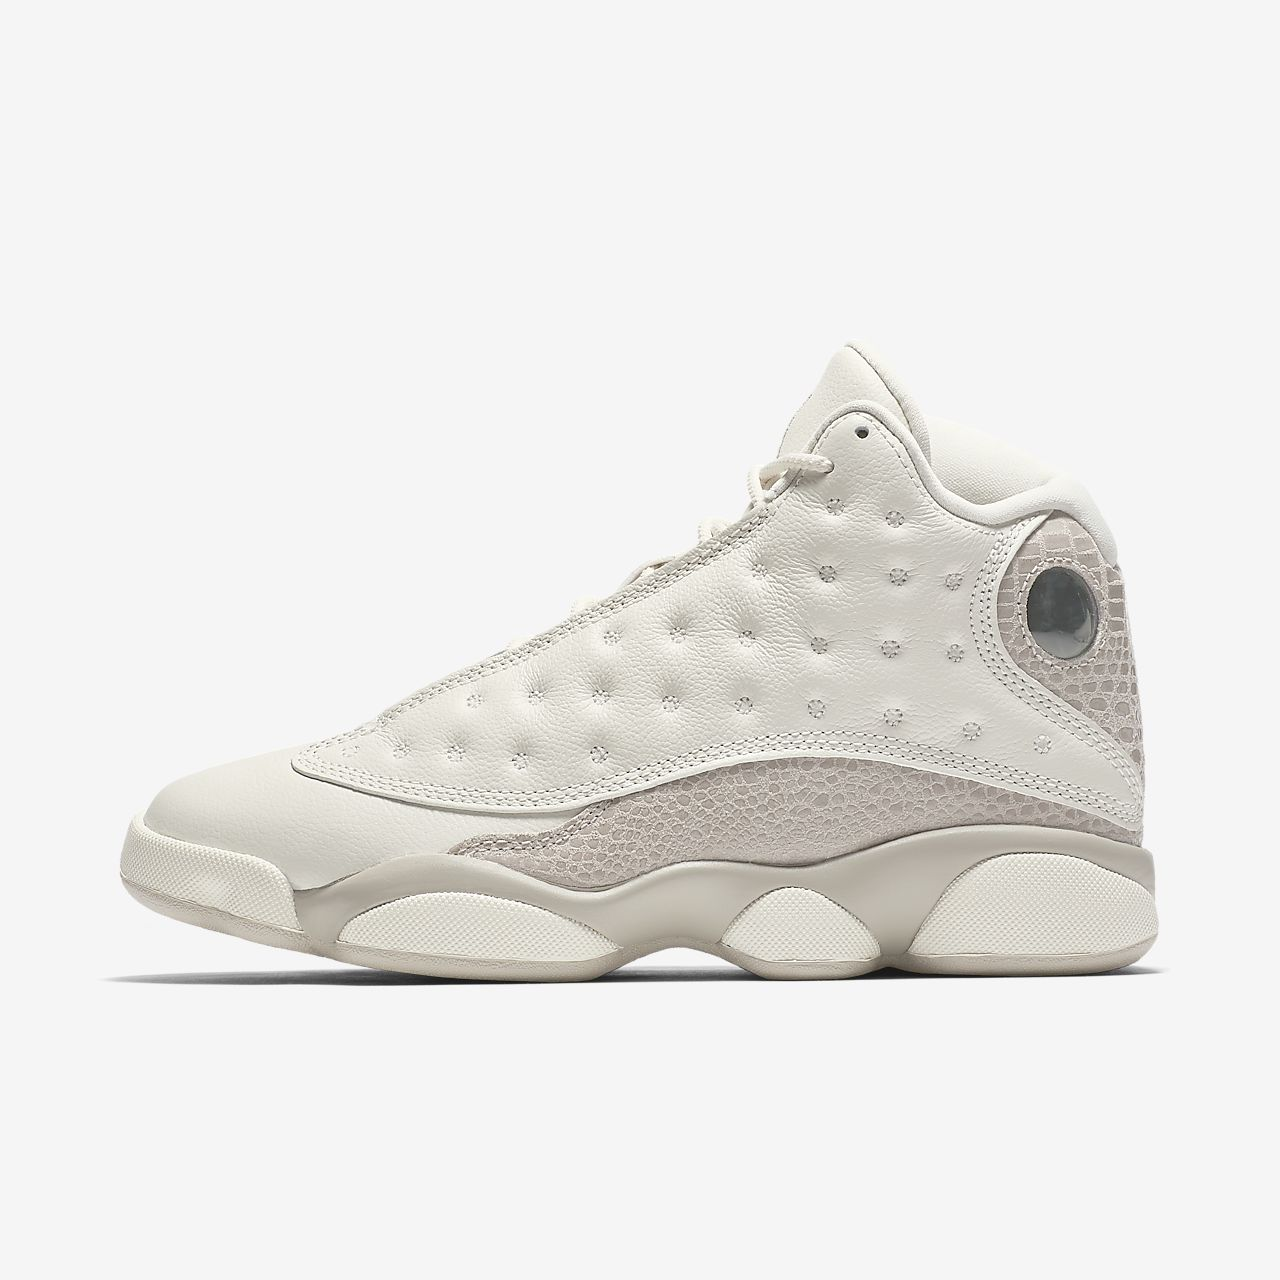 afb7ea5257ee5f Air Jordan 13 Retro Women s Shoe. Nike.com EG